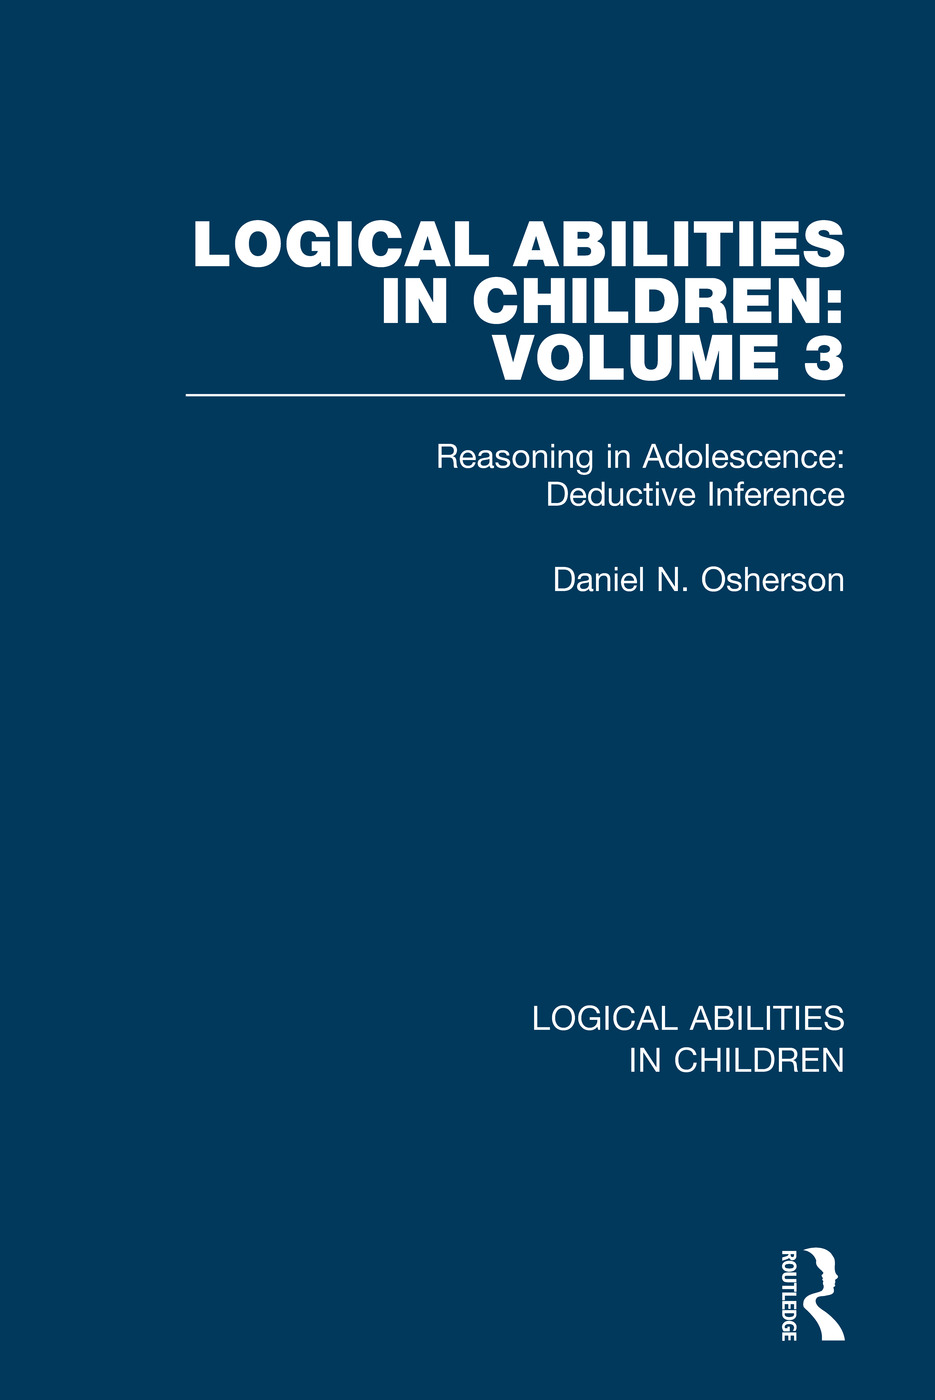 Logical Abilities in Children: Volume 3: Reasoning in Adolescence: Deductive Inference book cover